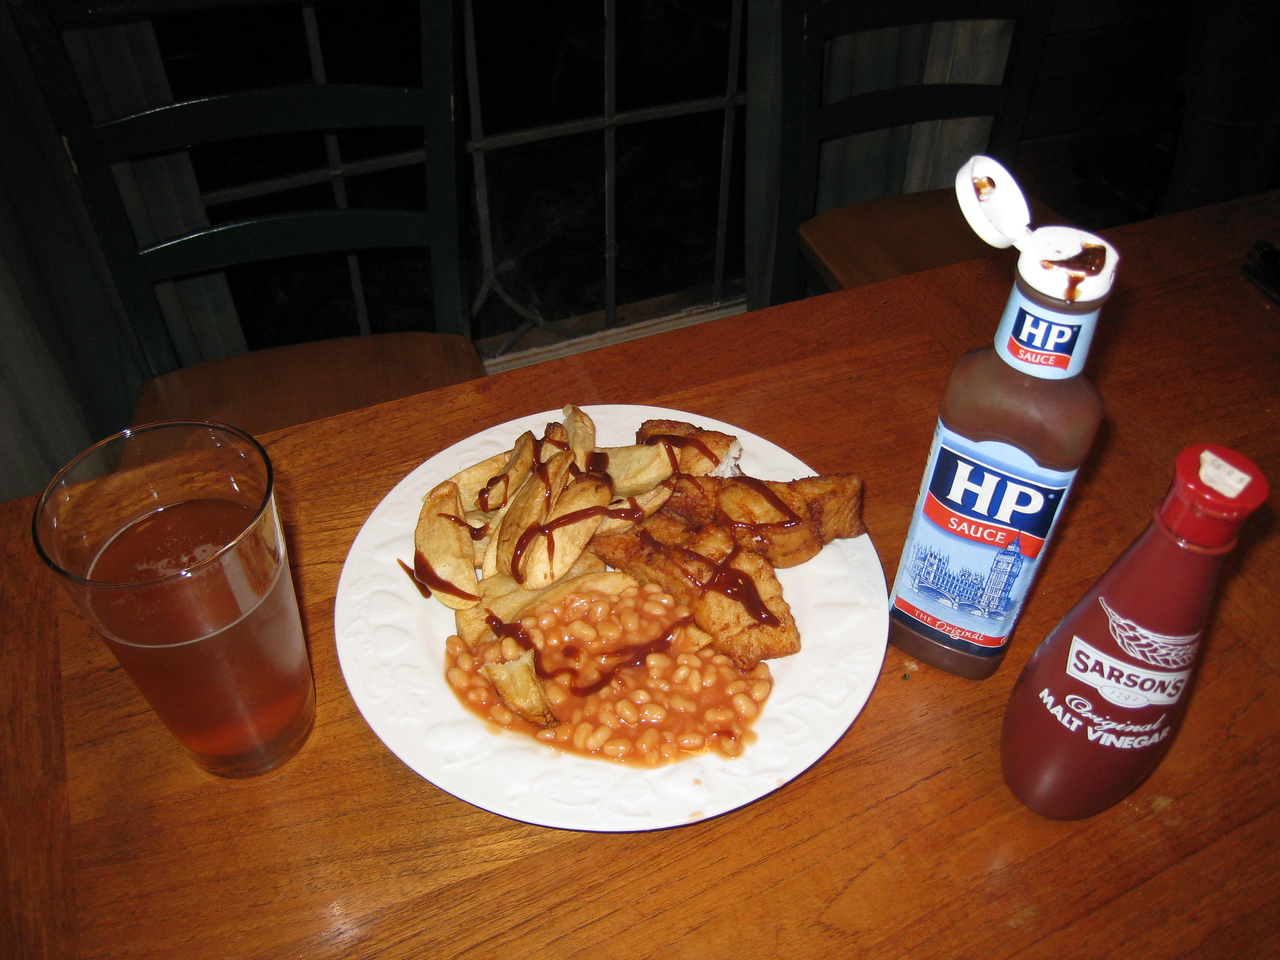 For my Birthday tea I got Fish & Chips withy baked beans washed down with a pint of IPA.